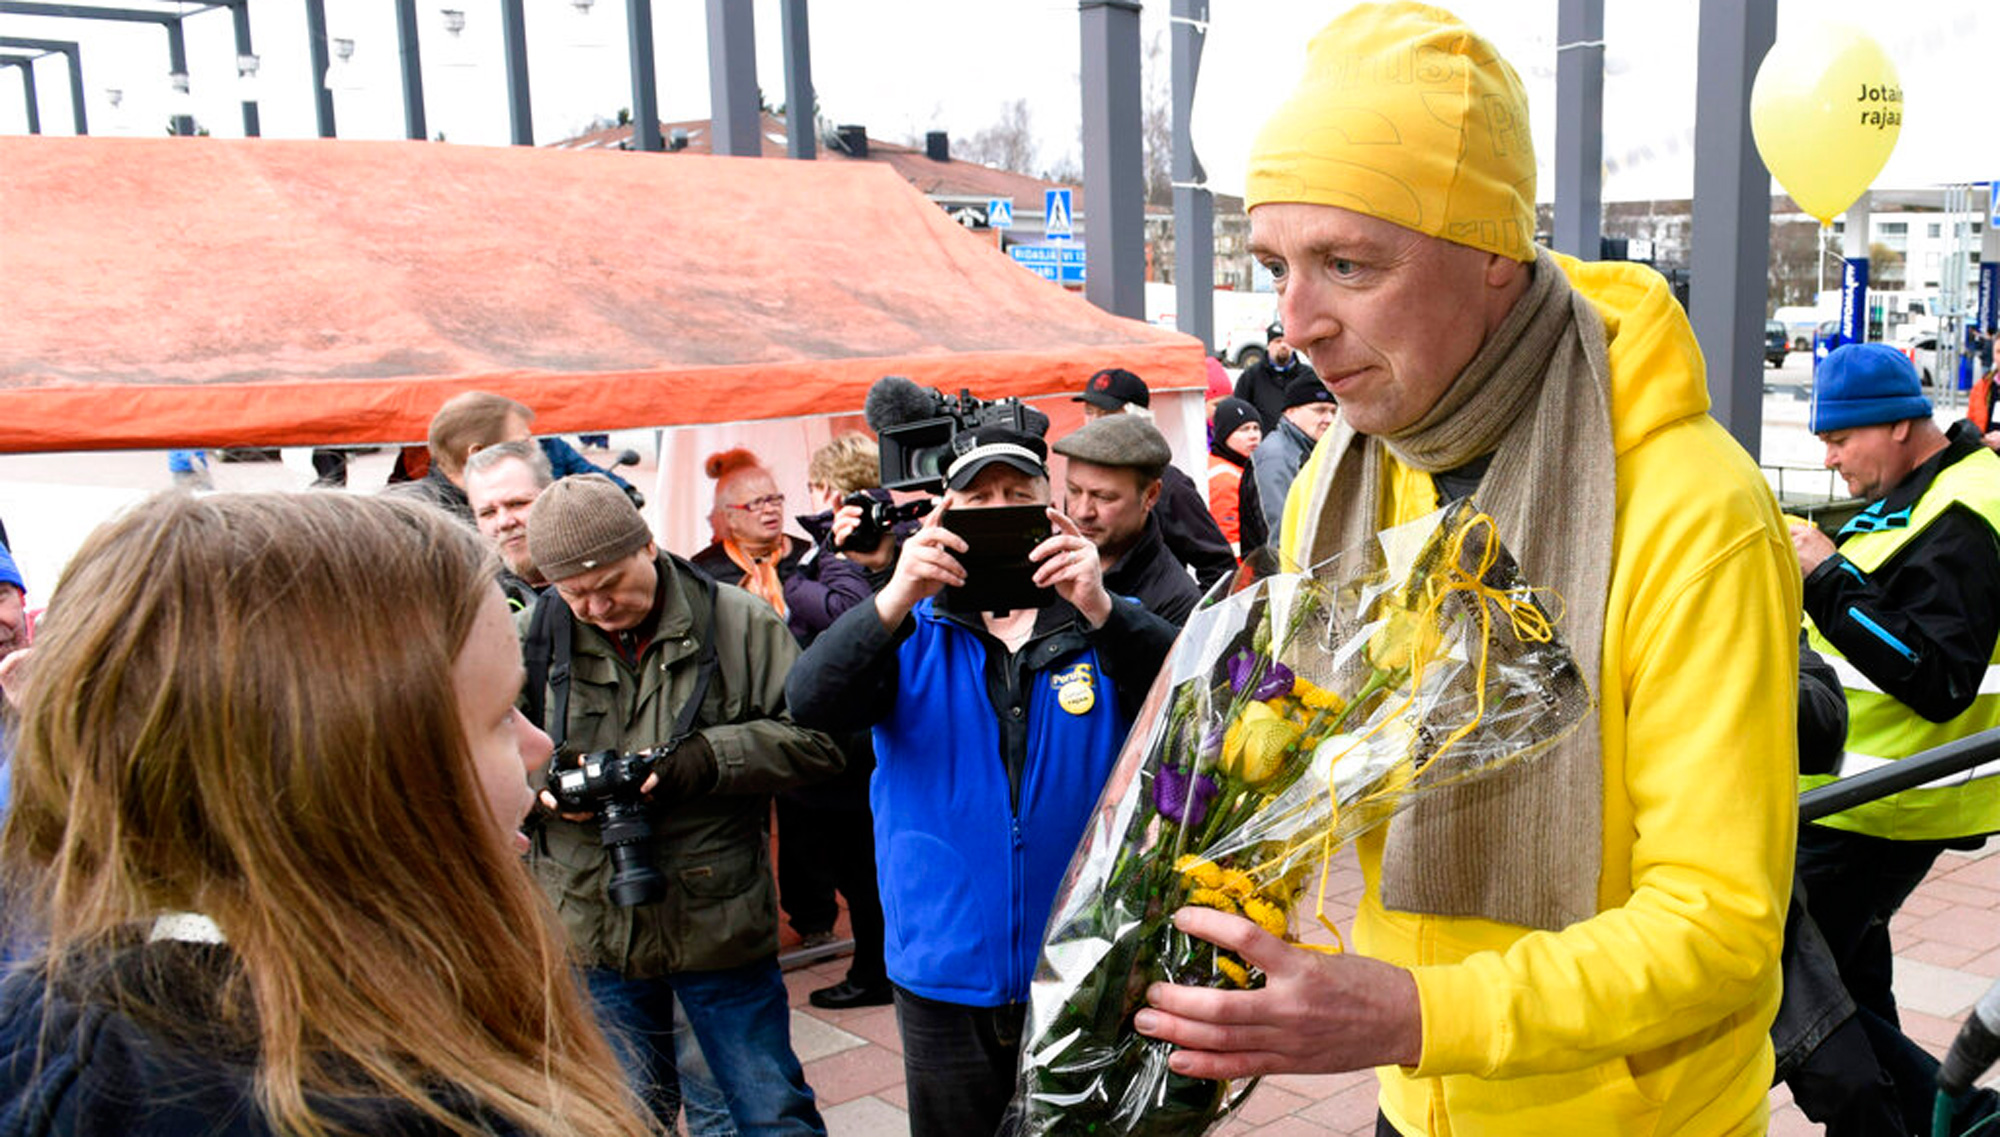 Chairman of the Finns Party Jussi Halla-aho, right, campaigns for the Finnish parliamentary elections in Tuusula, Finland on Saturday, April 13, 2019, a day ahead of the elections.